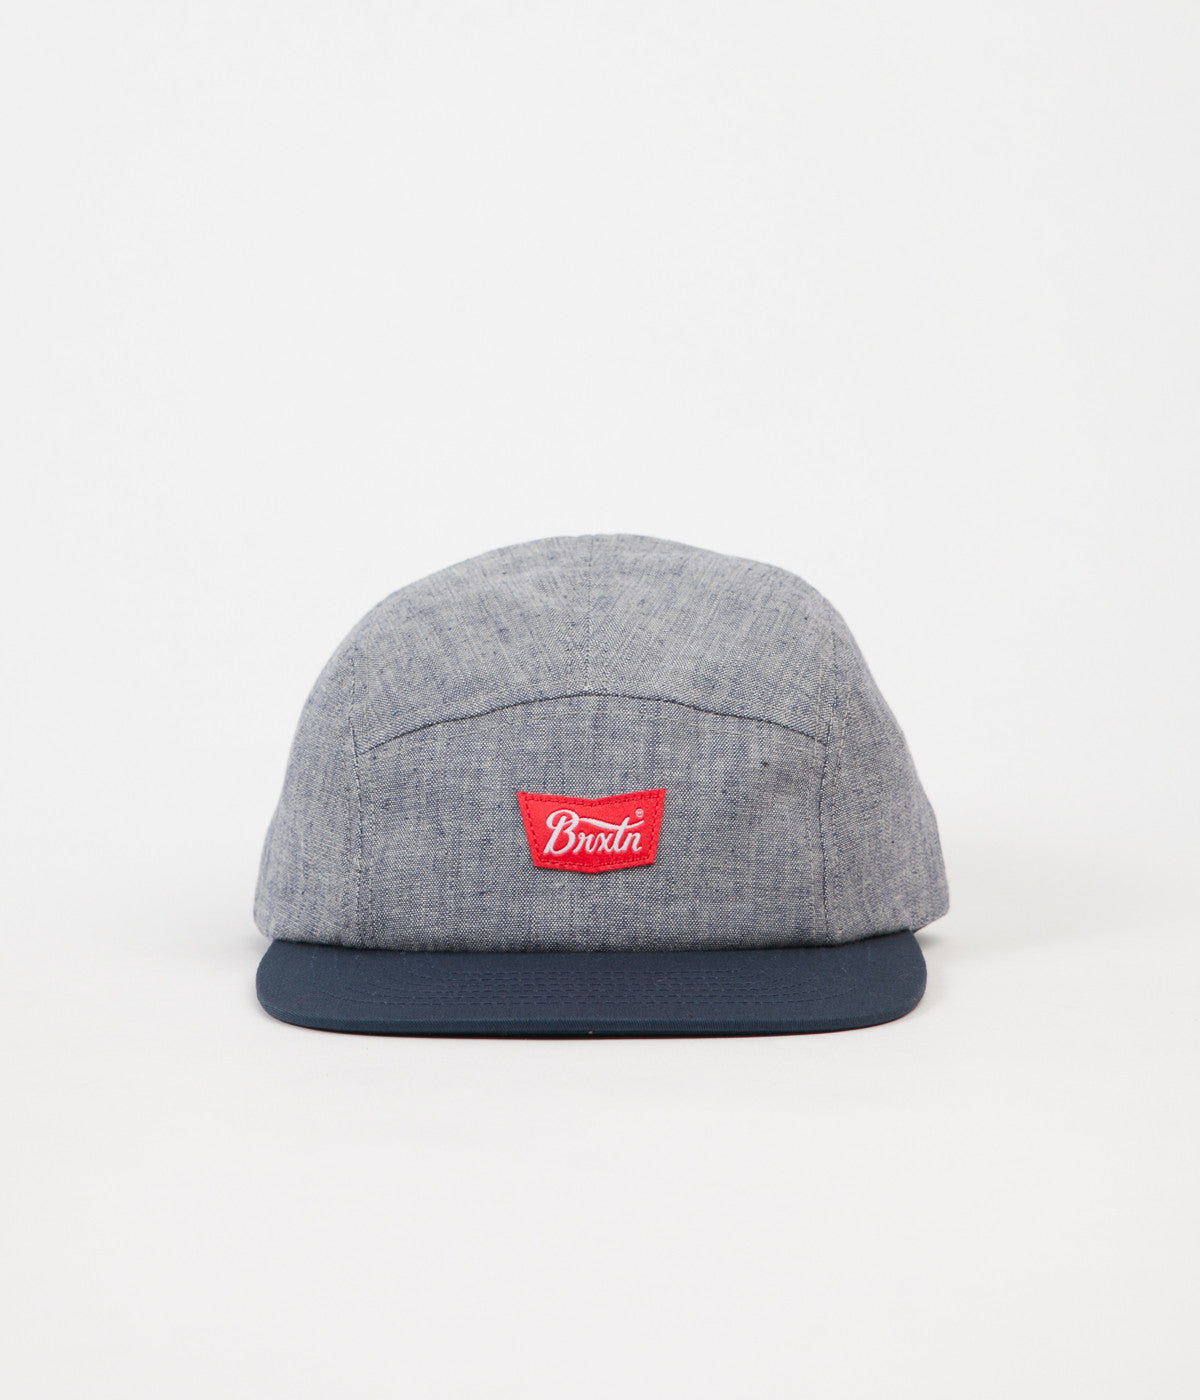 Brixton Stith 5 Panel Cap - Light Blue/ Navy